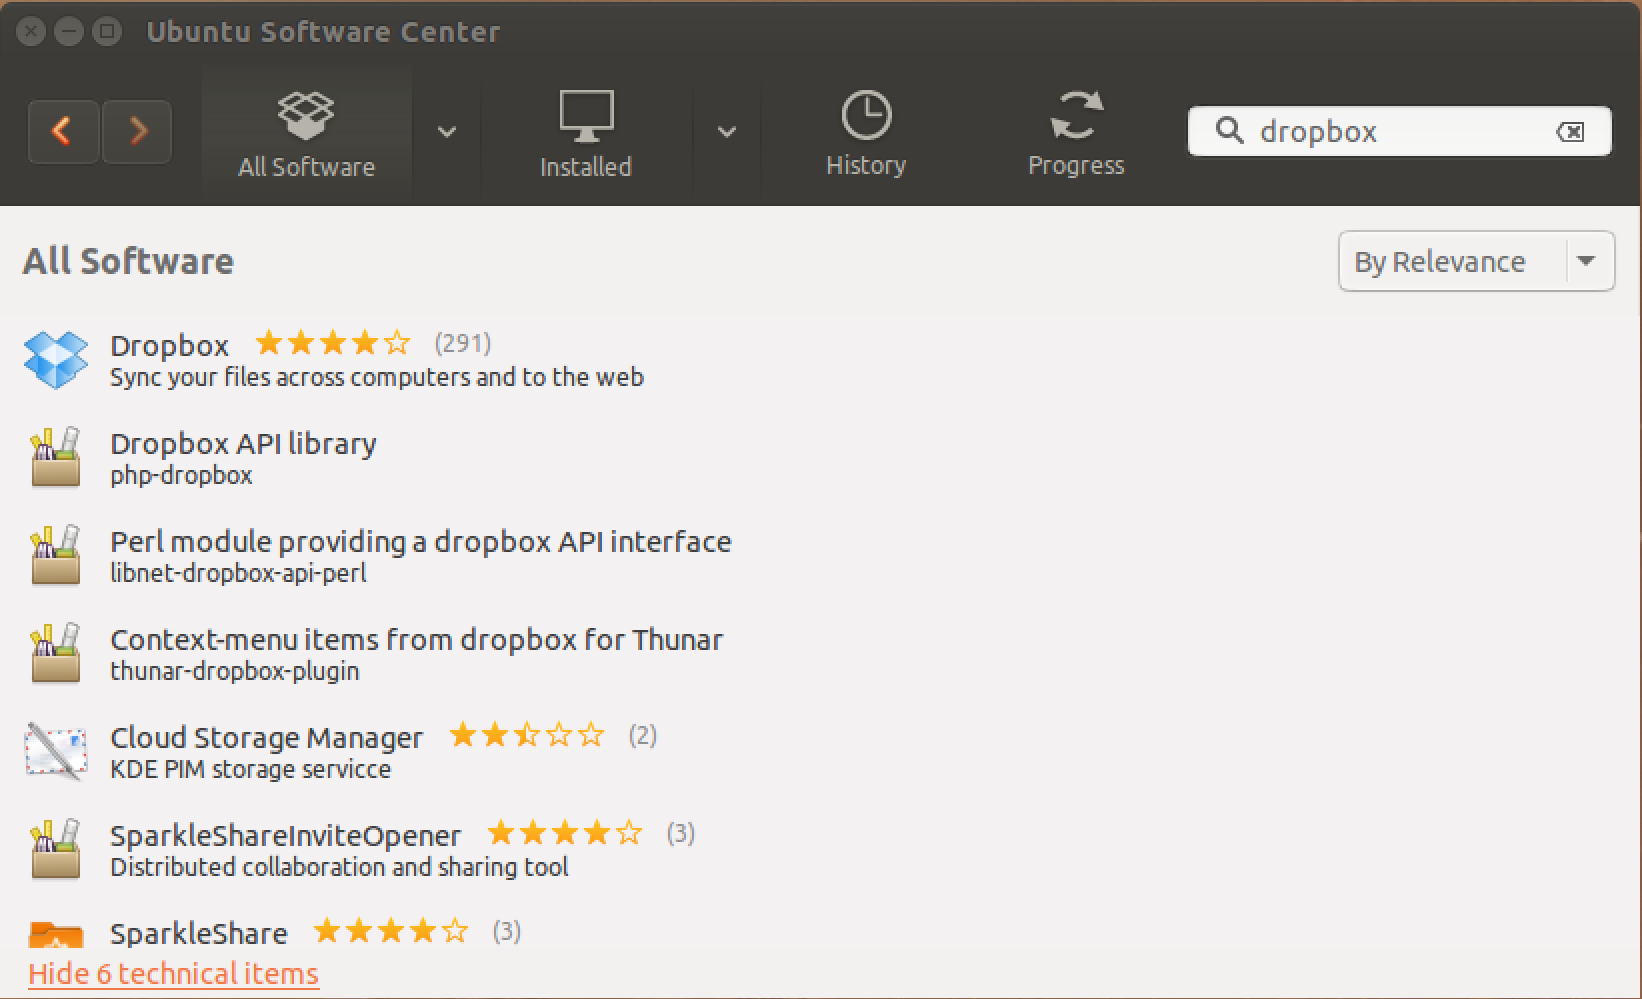 search for dropbox in ubuntu software center